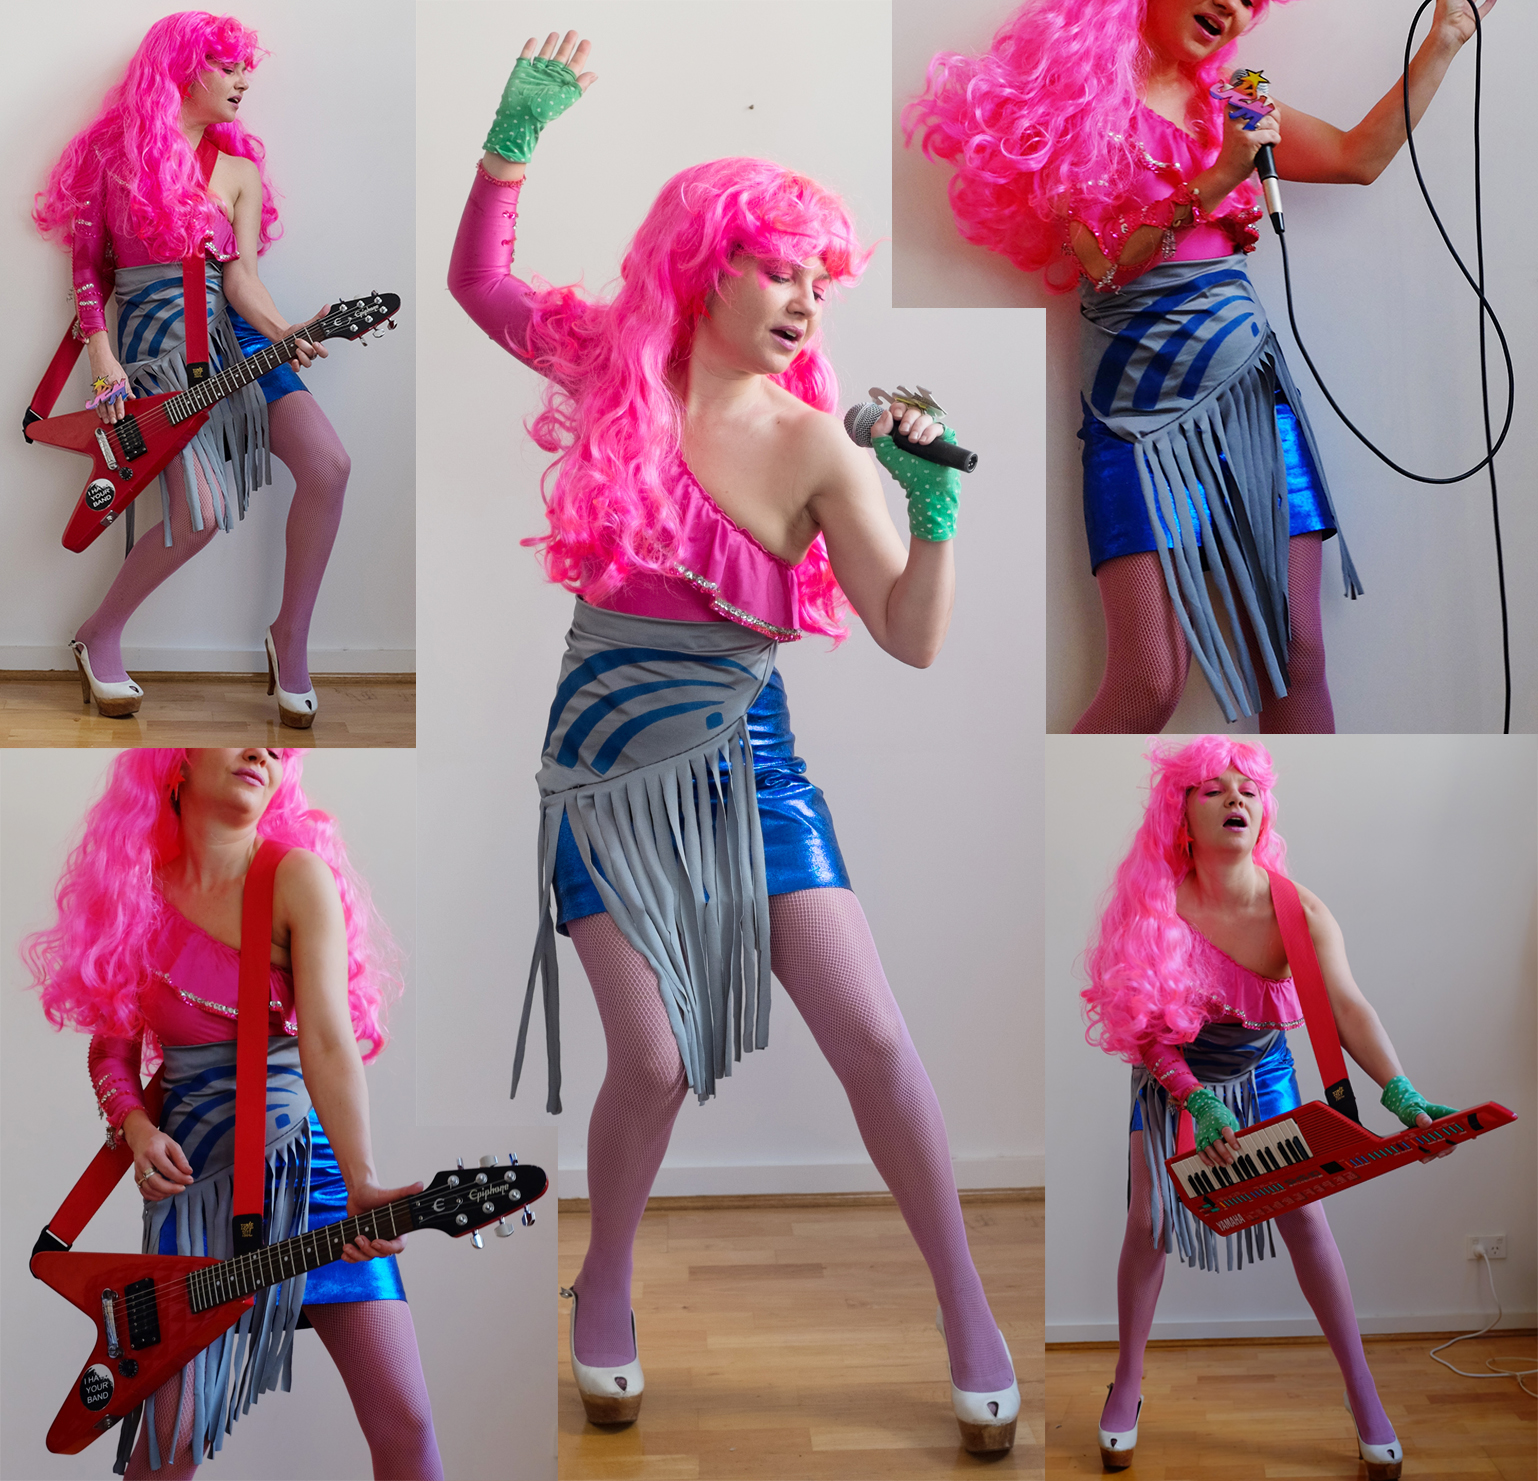 Truly Outrageous Jem photoshoot!